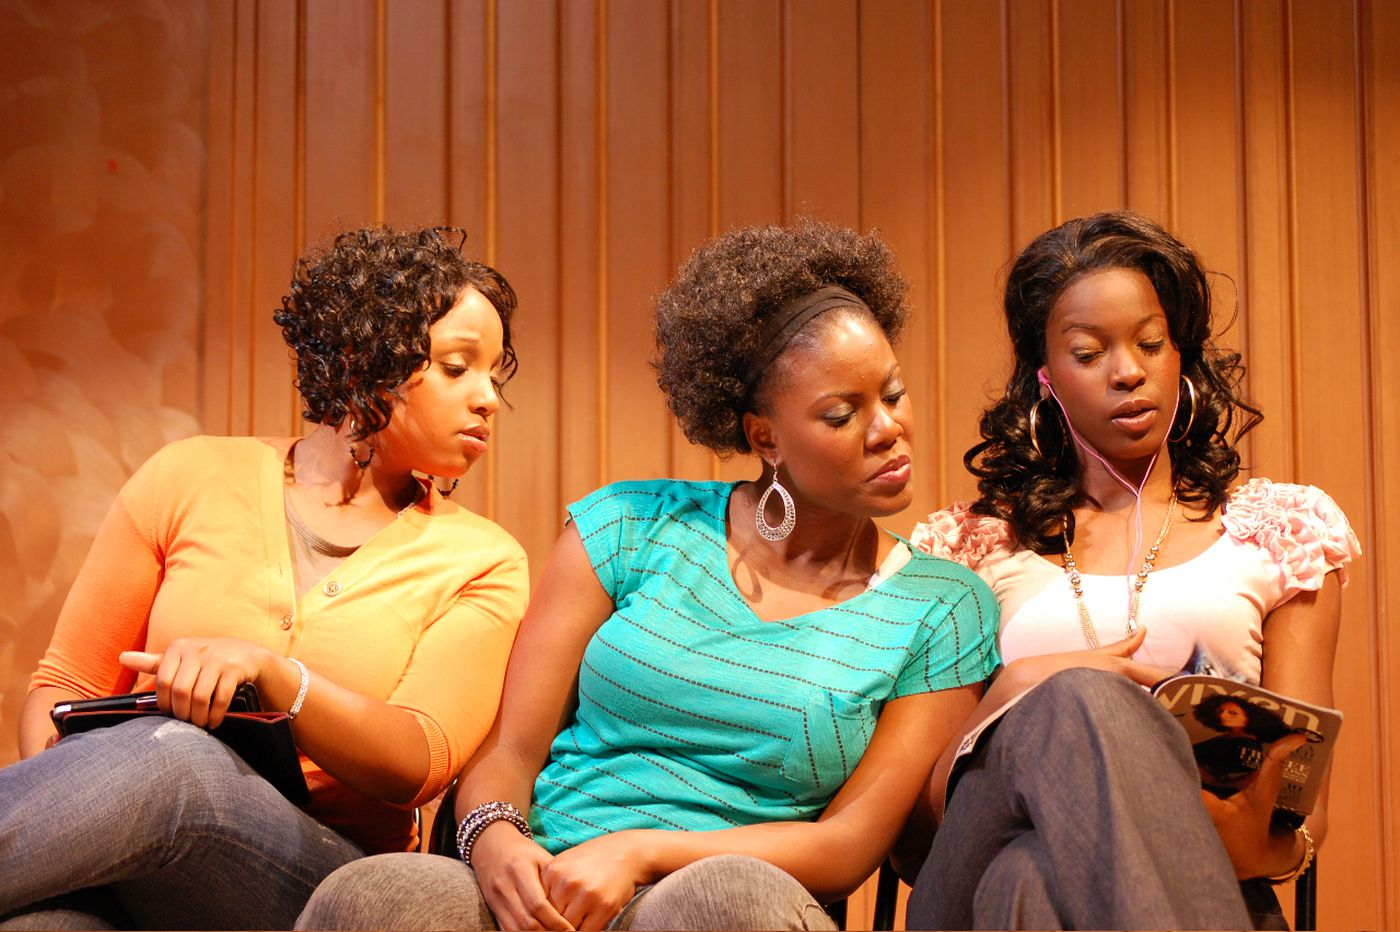 Gentrification hit Harlem first, and now a housing-boom play born there makes its Philly premiere